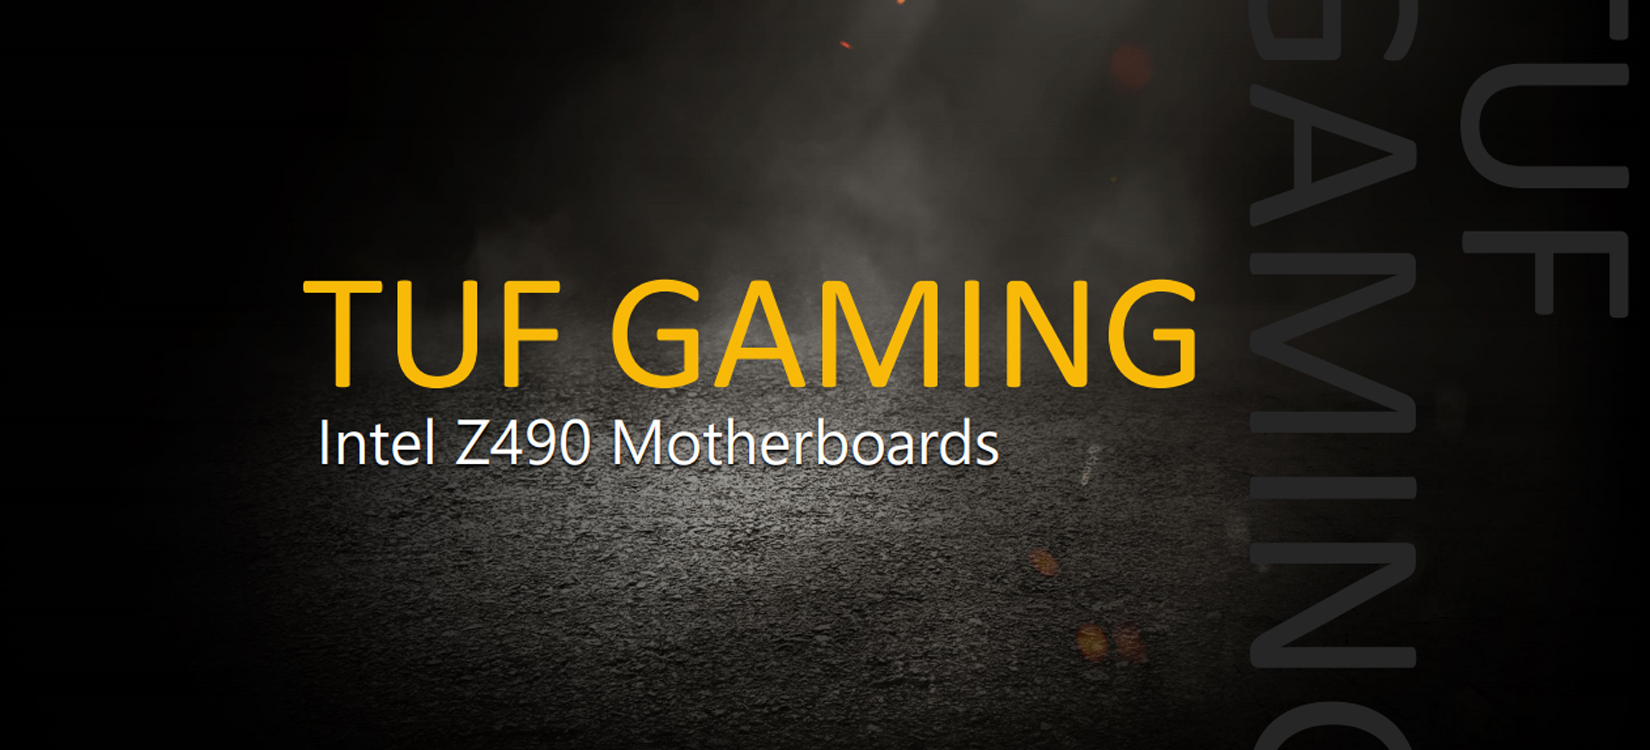 Mainboard ASUS TUF Gaming Z490-PLUS (WI-FI) (Intel Z490, Socket 1200, ATX, 4 khe RAM DDR4)